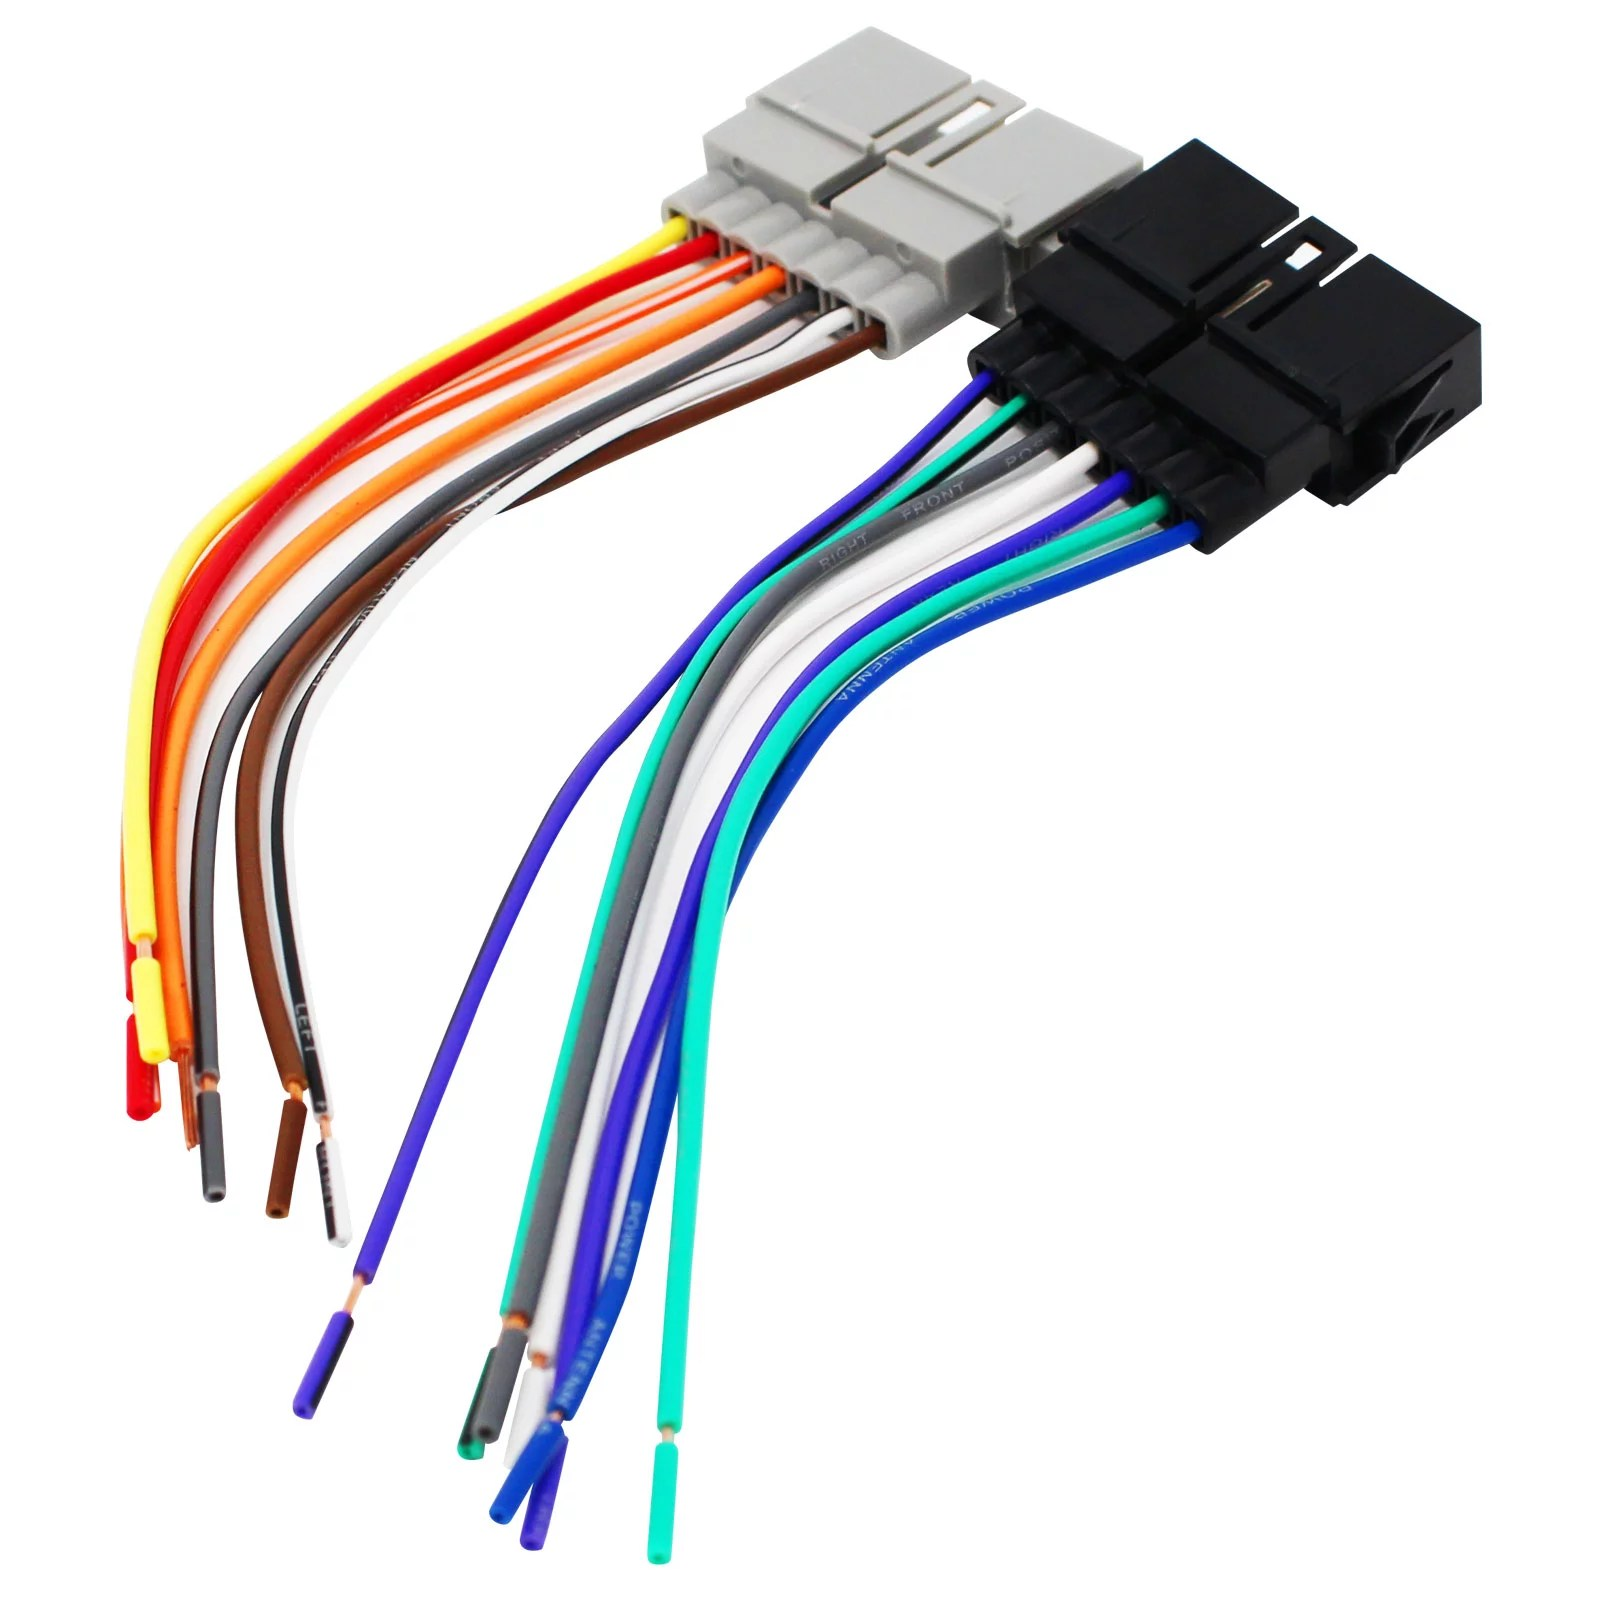 small resolution of replacement radio wiring harness for 2001 dodge ram 1500 2000 dodge ram 1500 1999 dodge ram 1500 1998 dodge ram 1500 1997 dodge ram 1500 1996 dodge ram